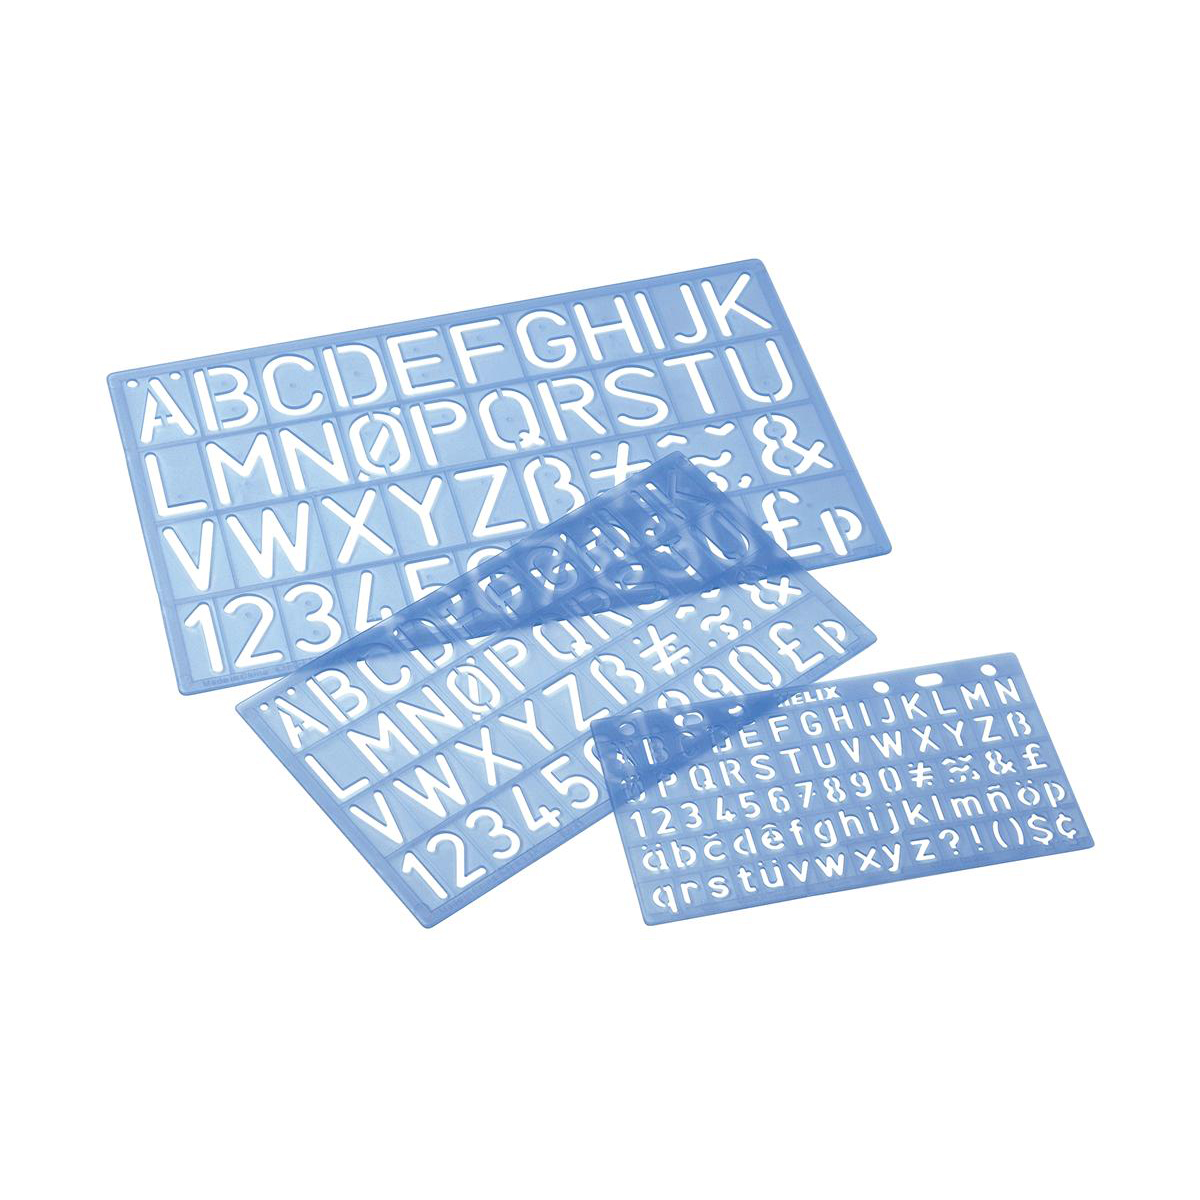 Stencils or lettering aids Stencil Pack of Three Templates Letters/Numbers/Symbols 10/20/30mm with PVC Sleeve Blue Tint